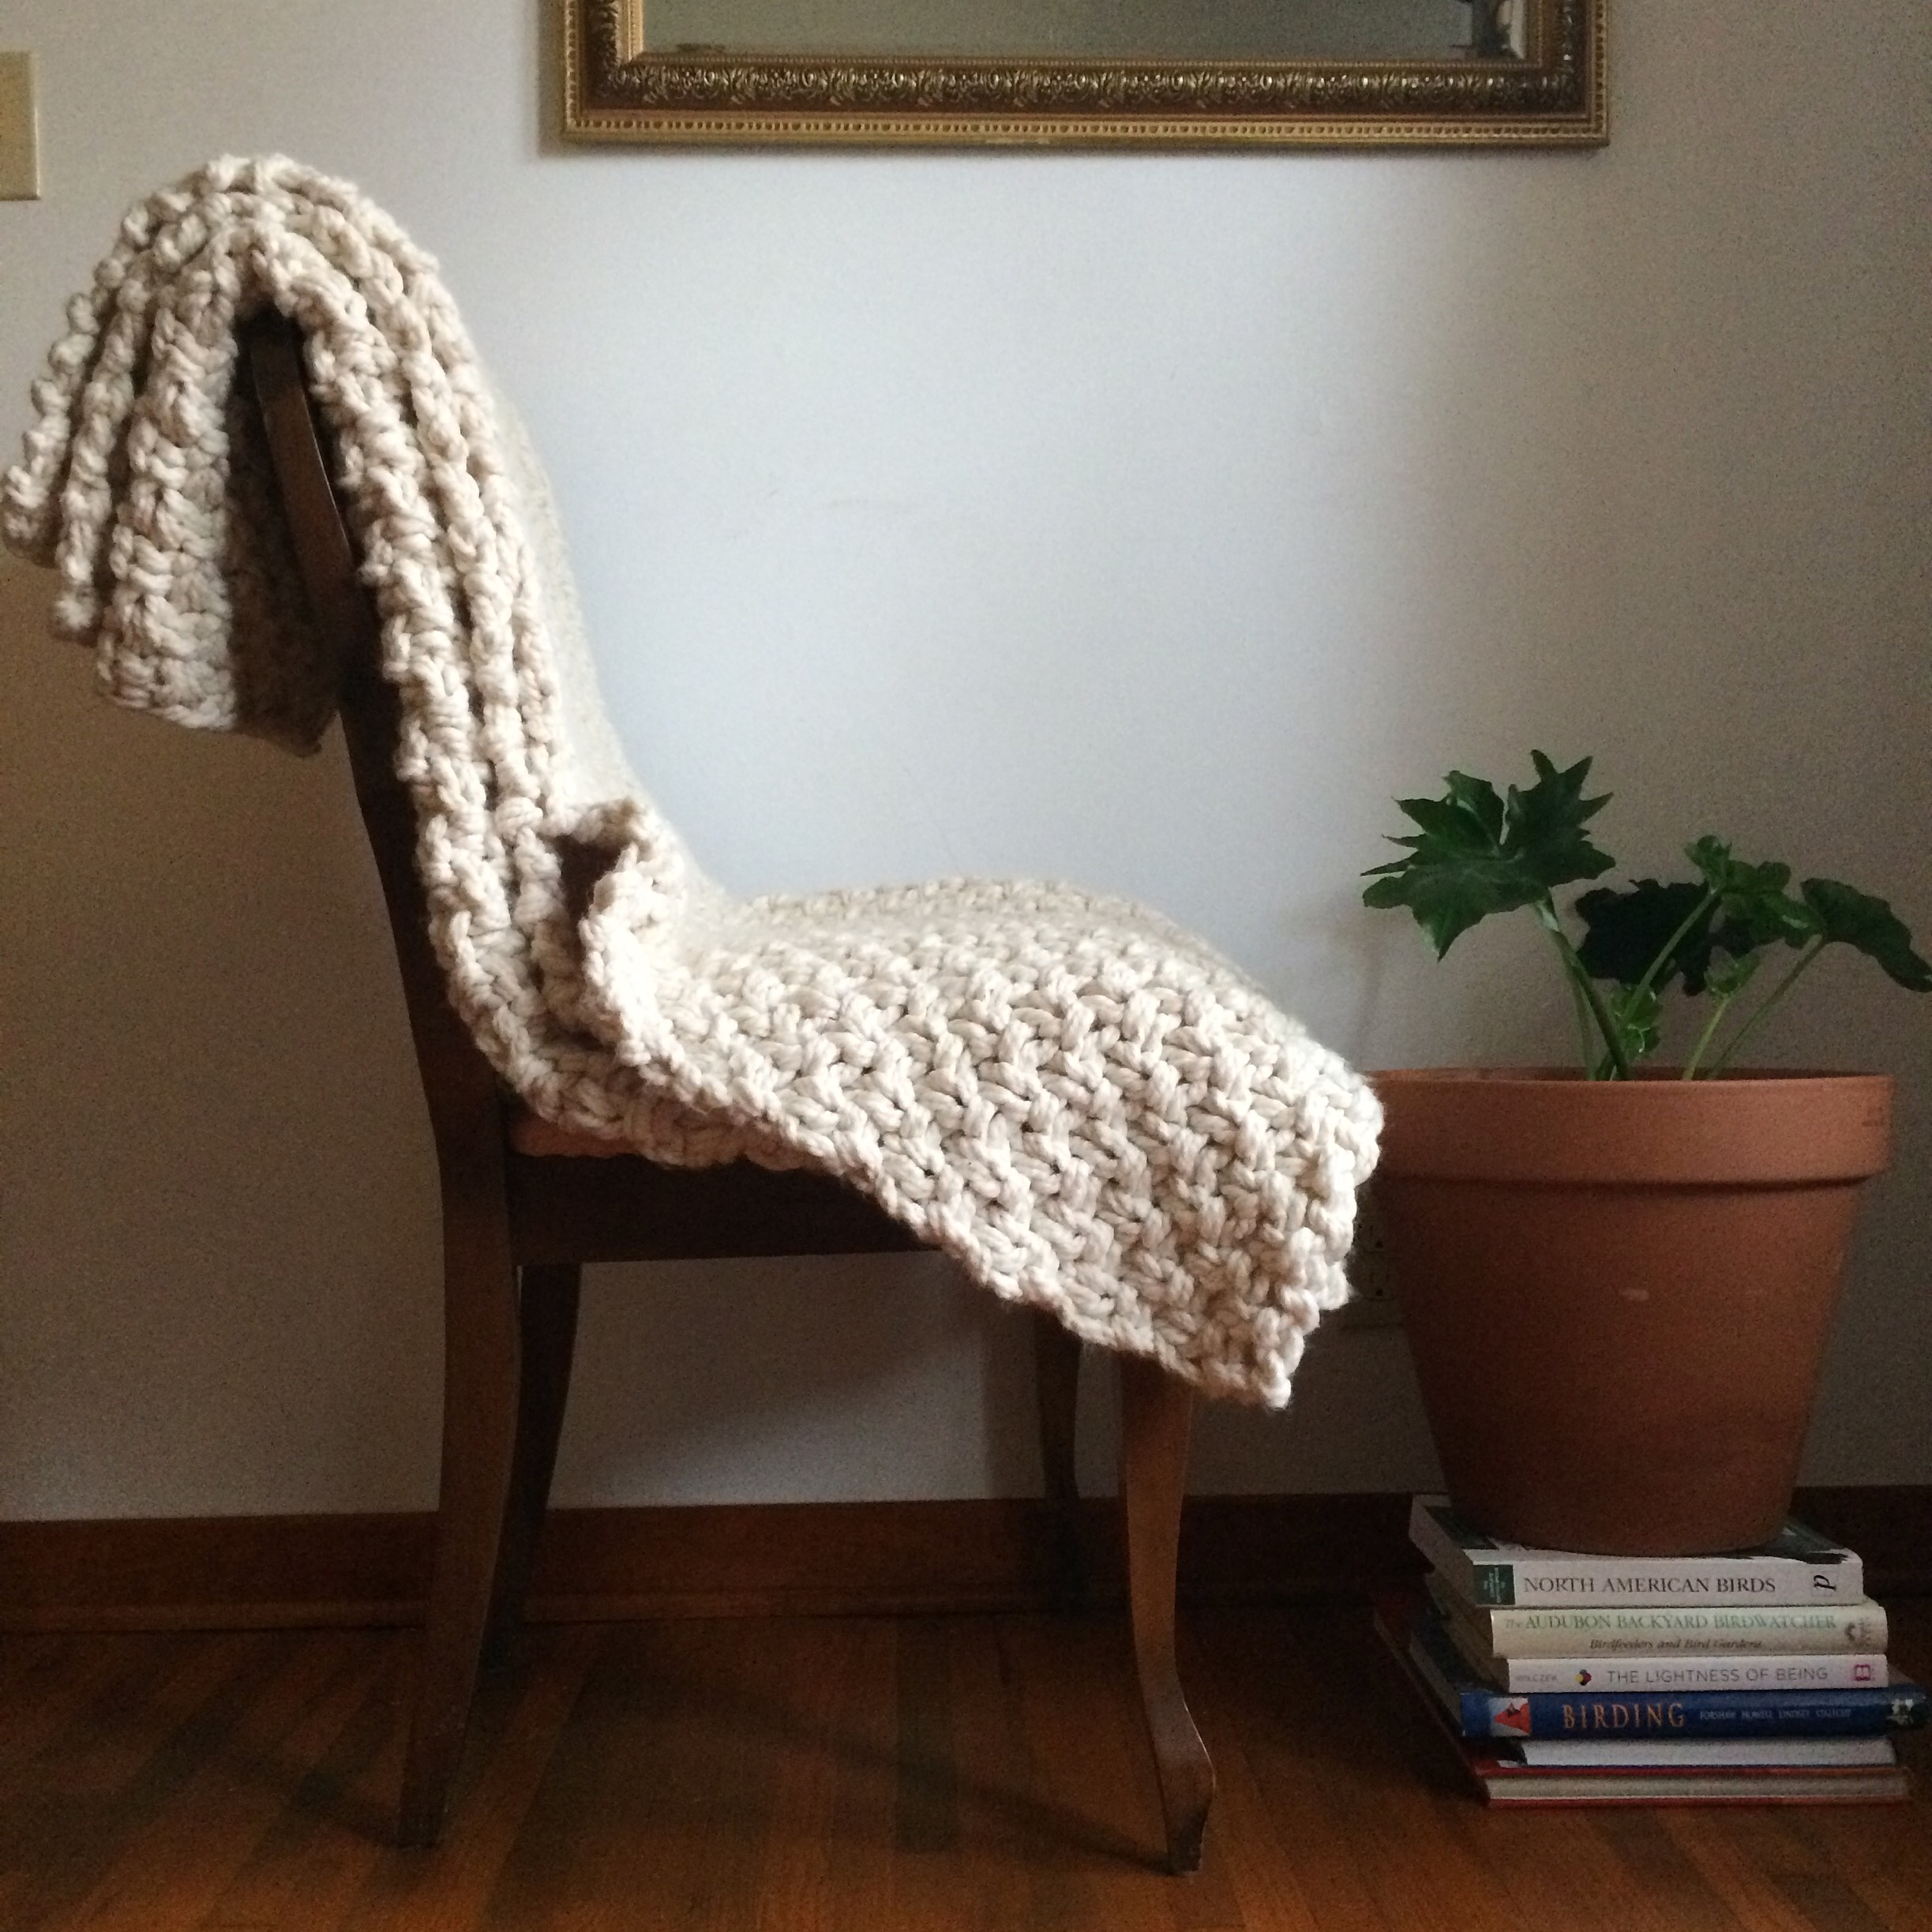 Fall Decor Knitted Patterns For Your Home Chunky Knit Blanket.JPG